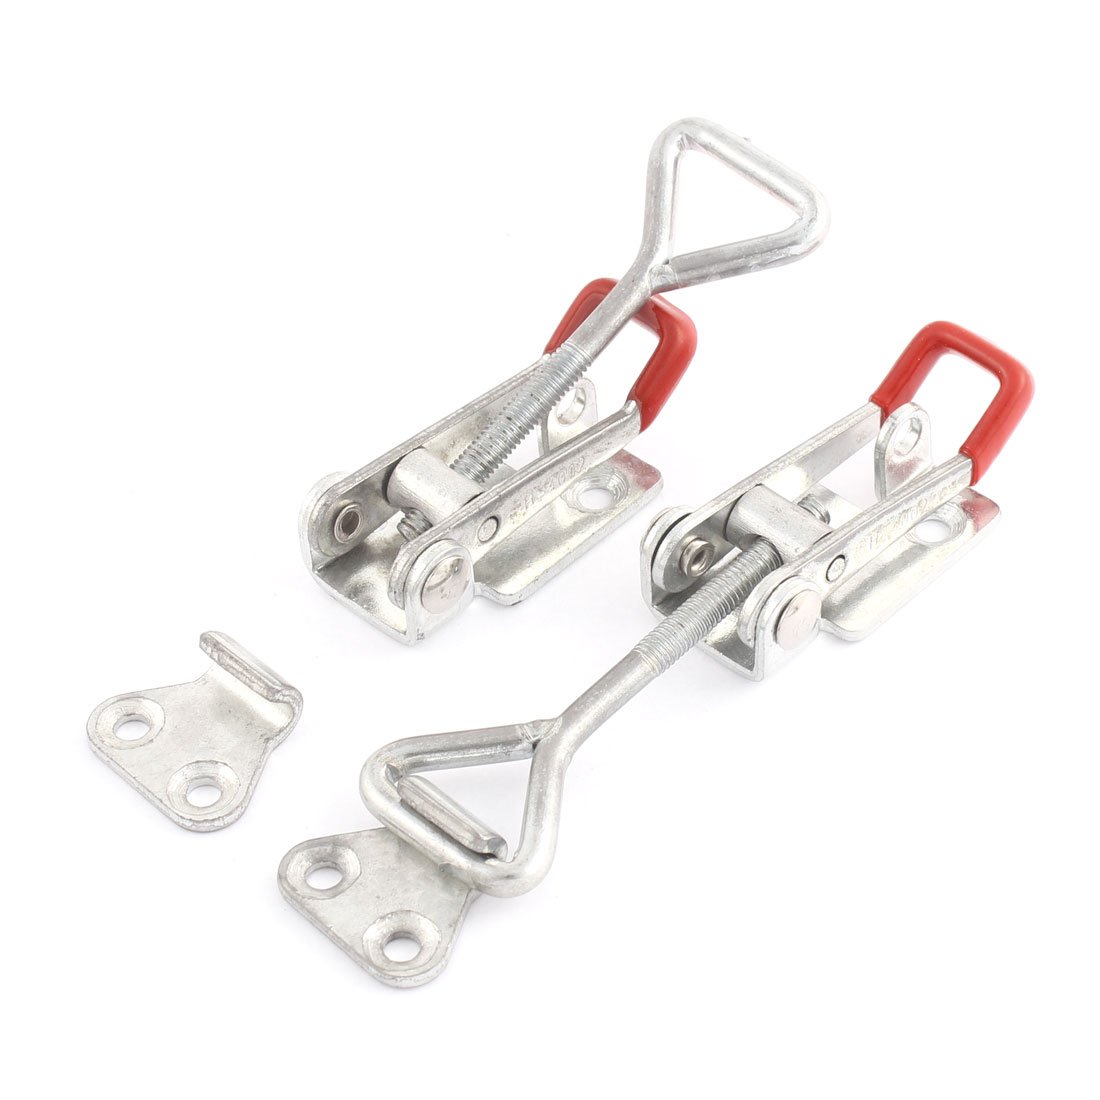 H-4002 180Kg 397 Lbs Holding Capacity Quickly Holding Push Pull Metal Toggle Clamp 2 Pcs